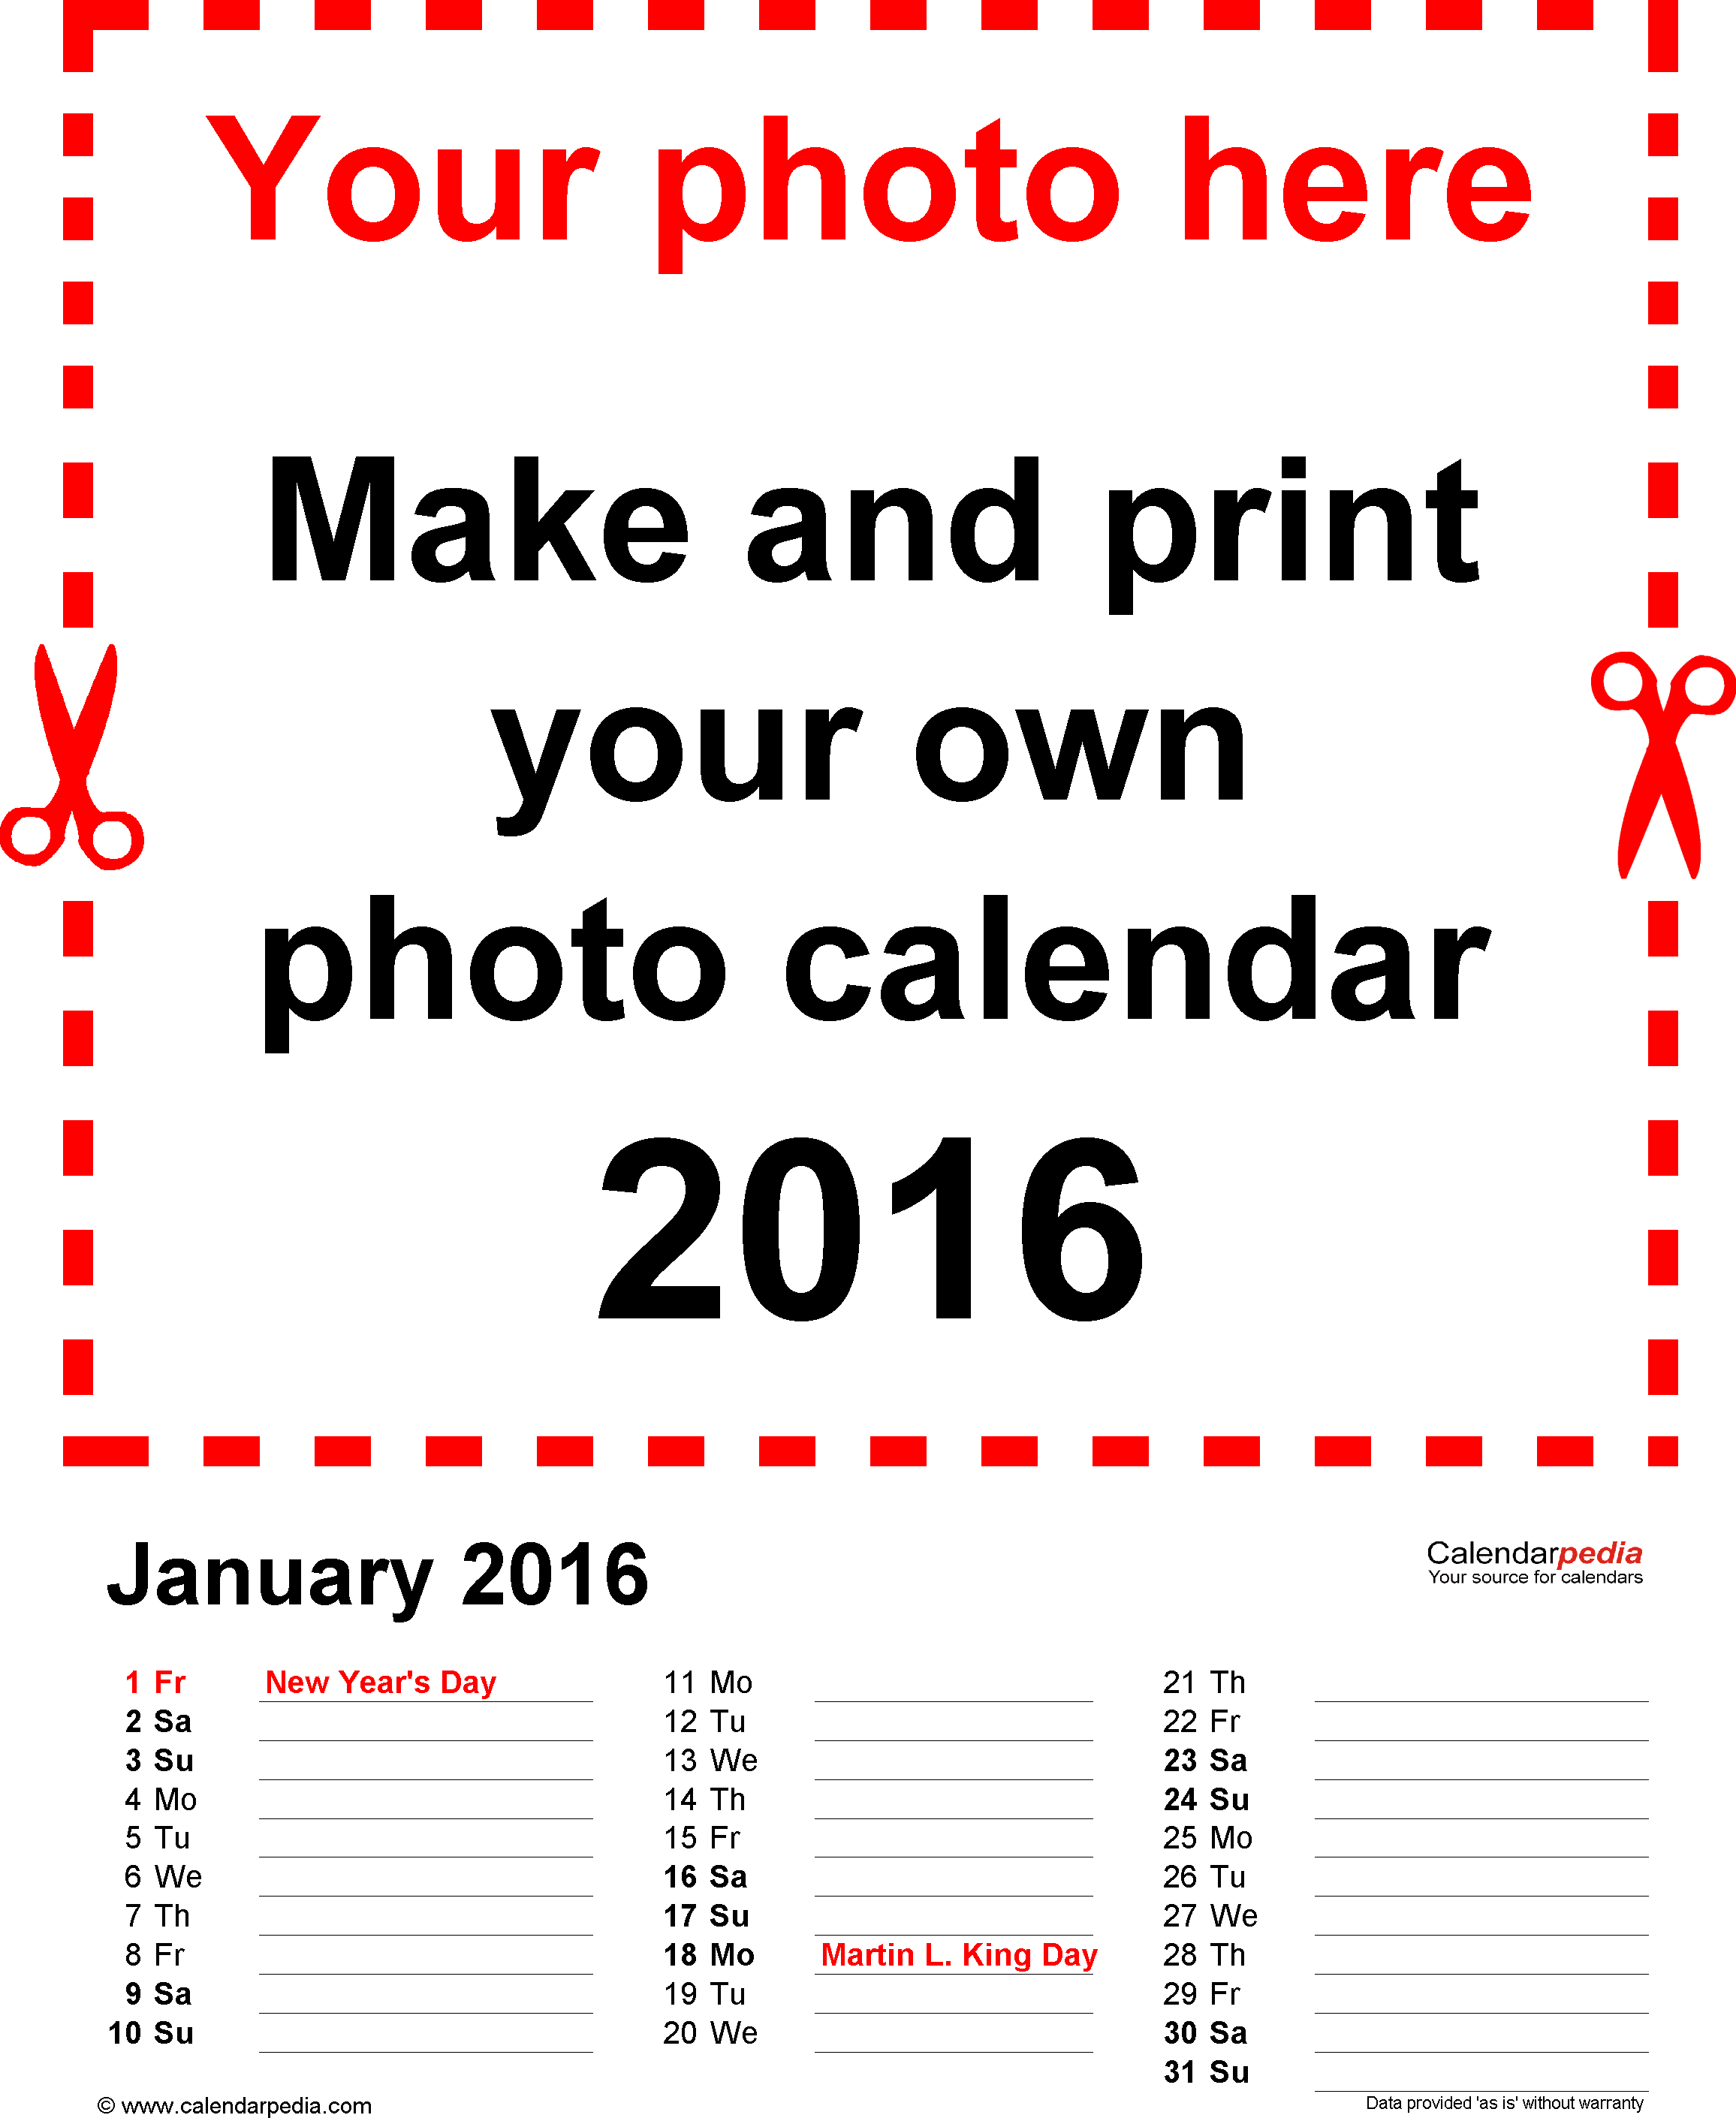 Template 3: Photo calendar 2016 for Excel, 12 pages, portrait format, days in three columns